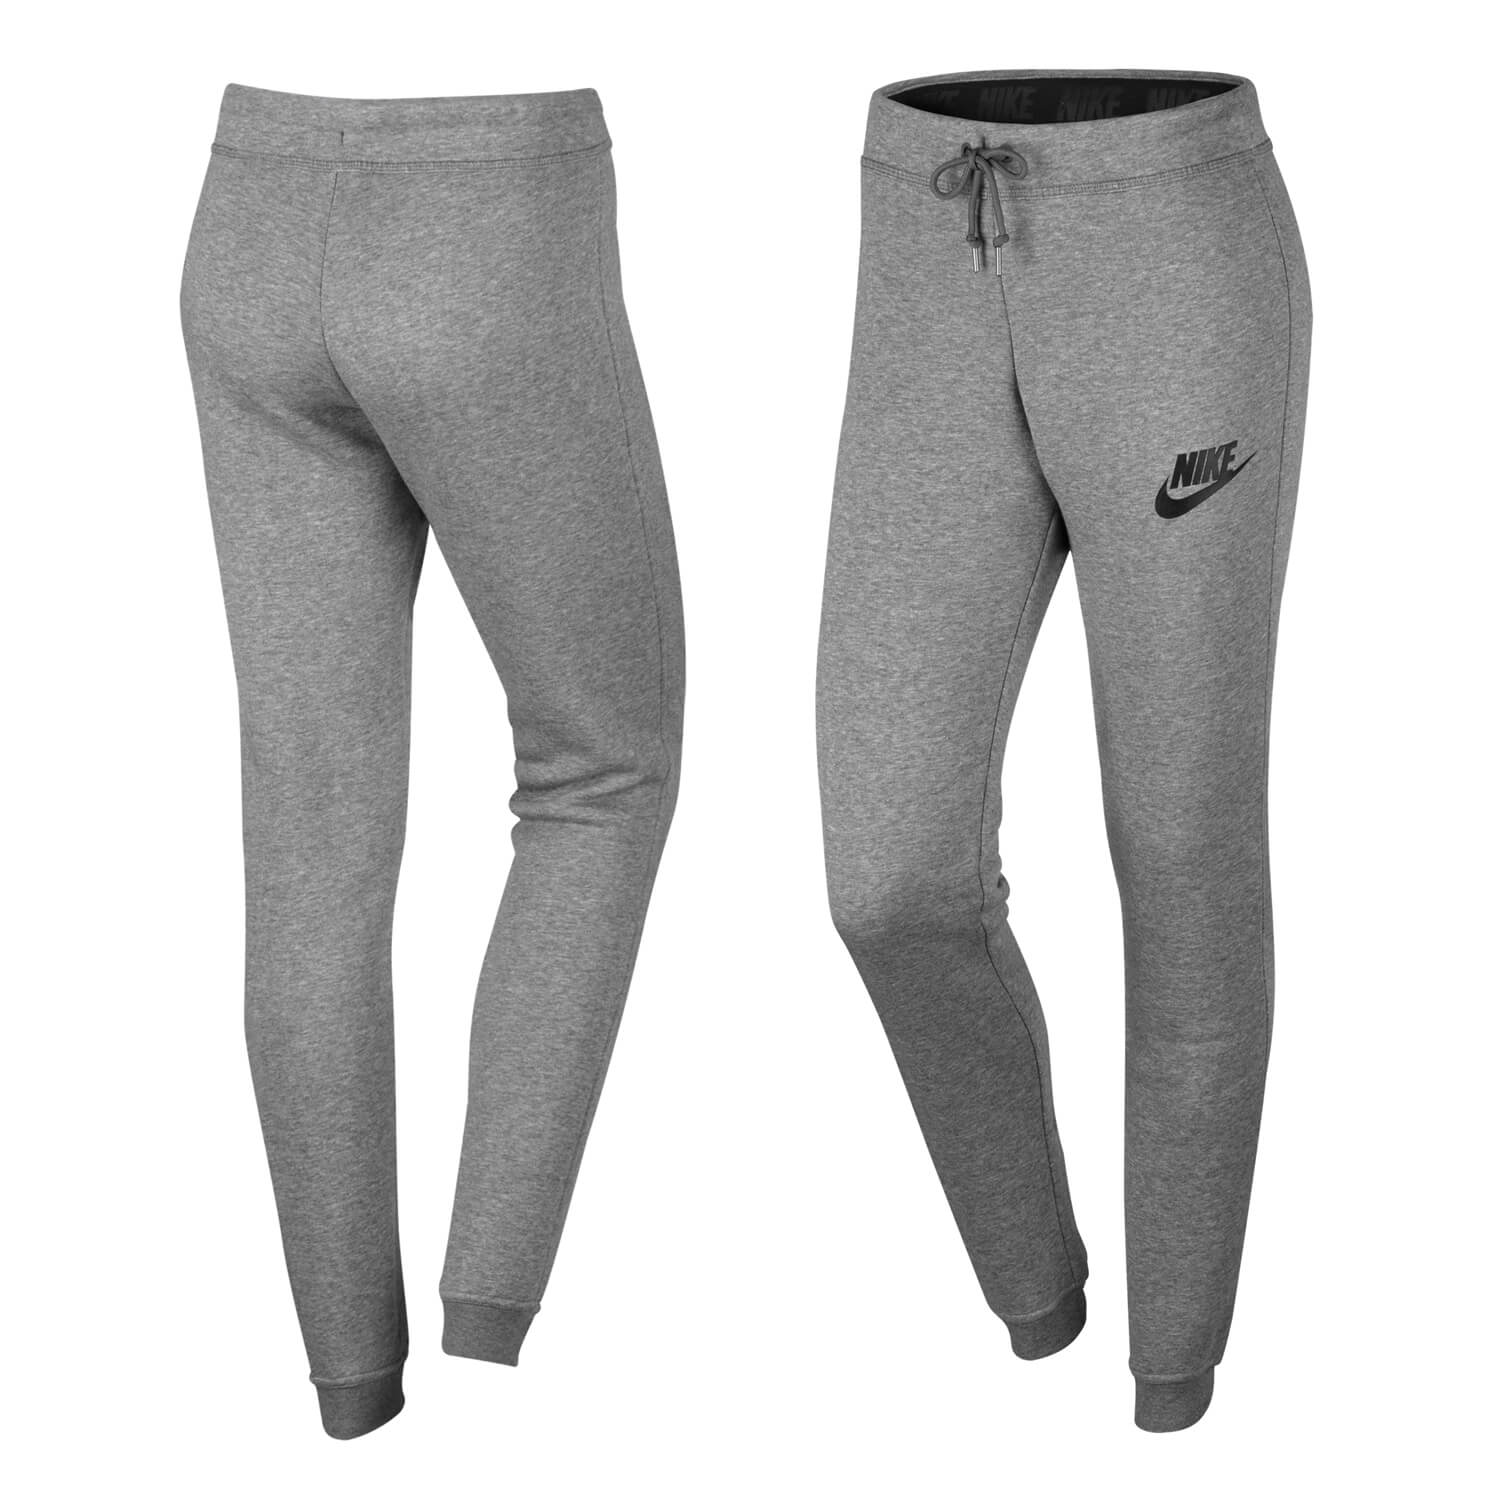 nike rally tight pant carbon heather grau damen. Black Bedroom Furniture Sets. Home Design Ideas